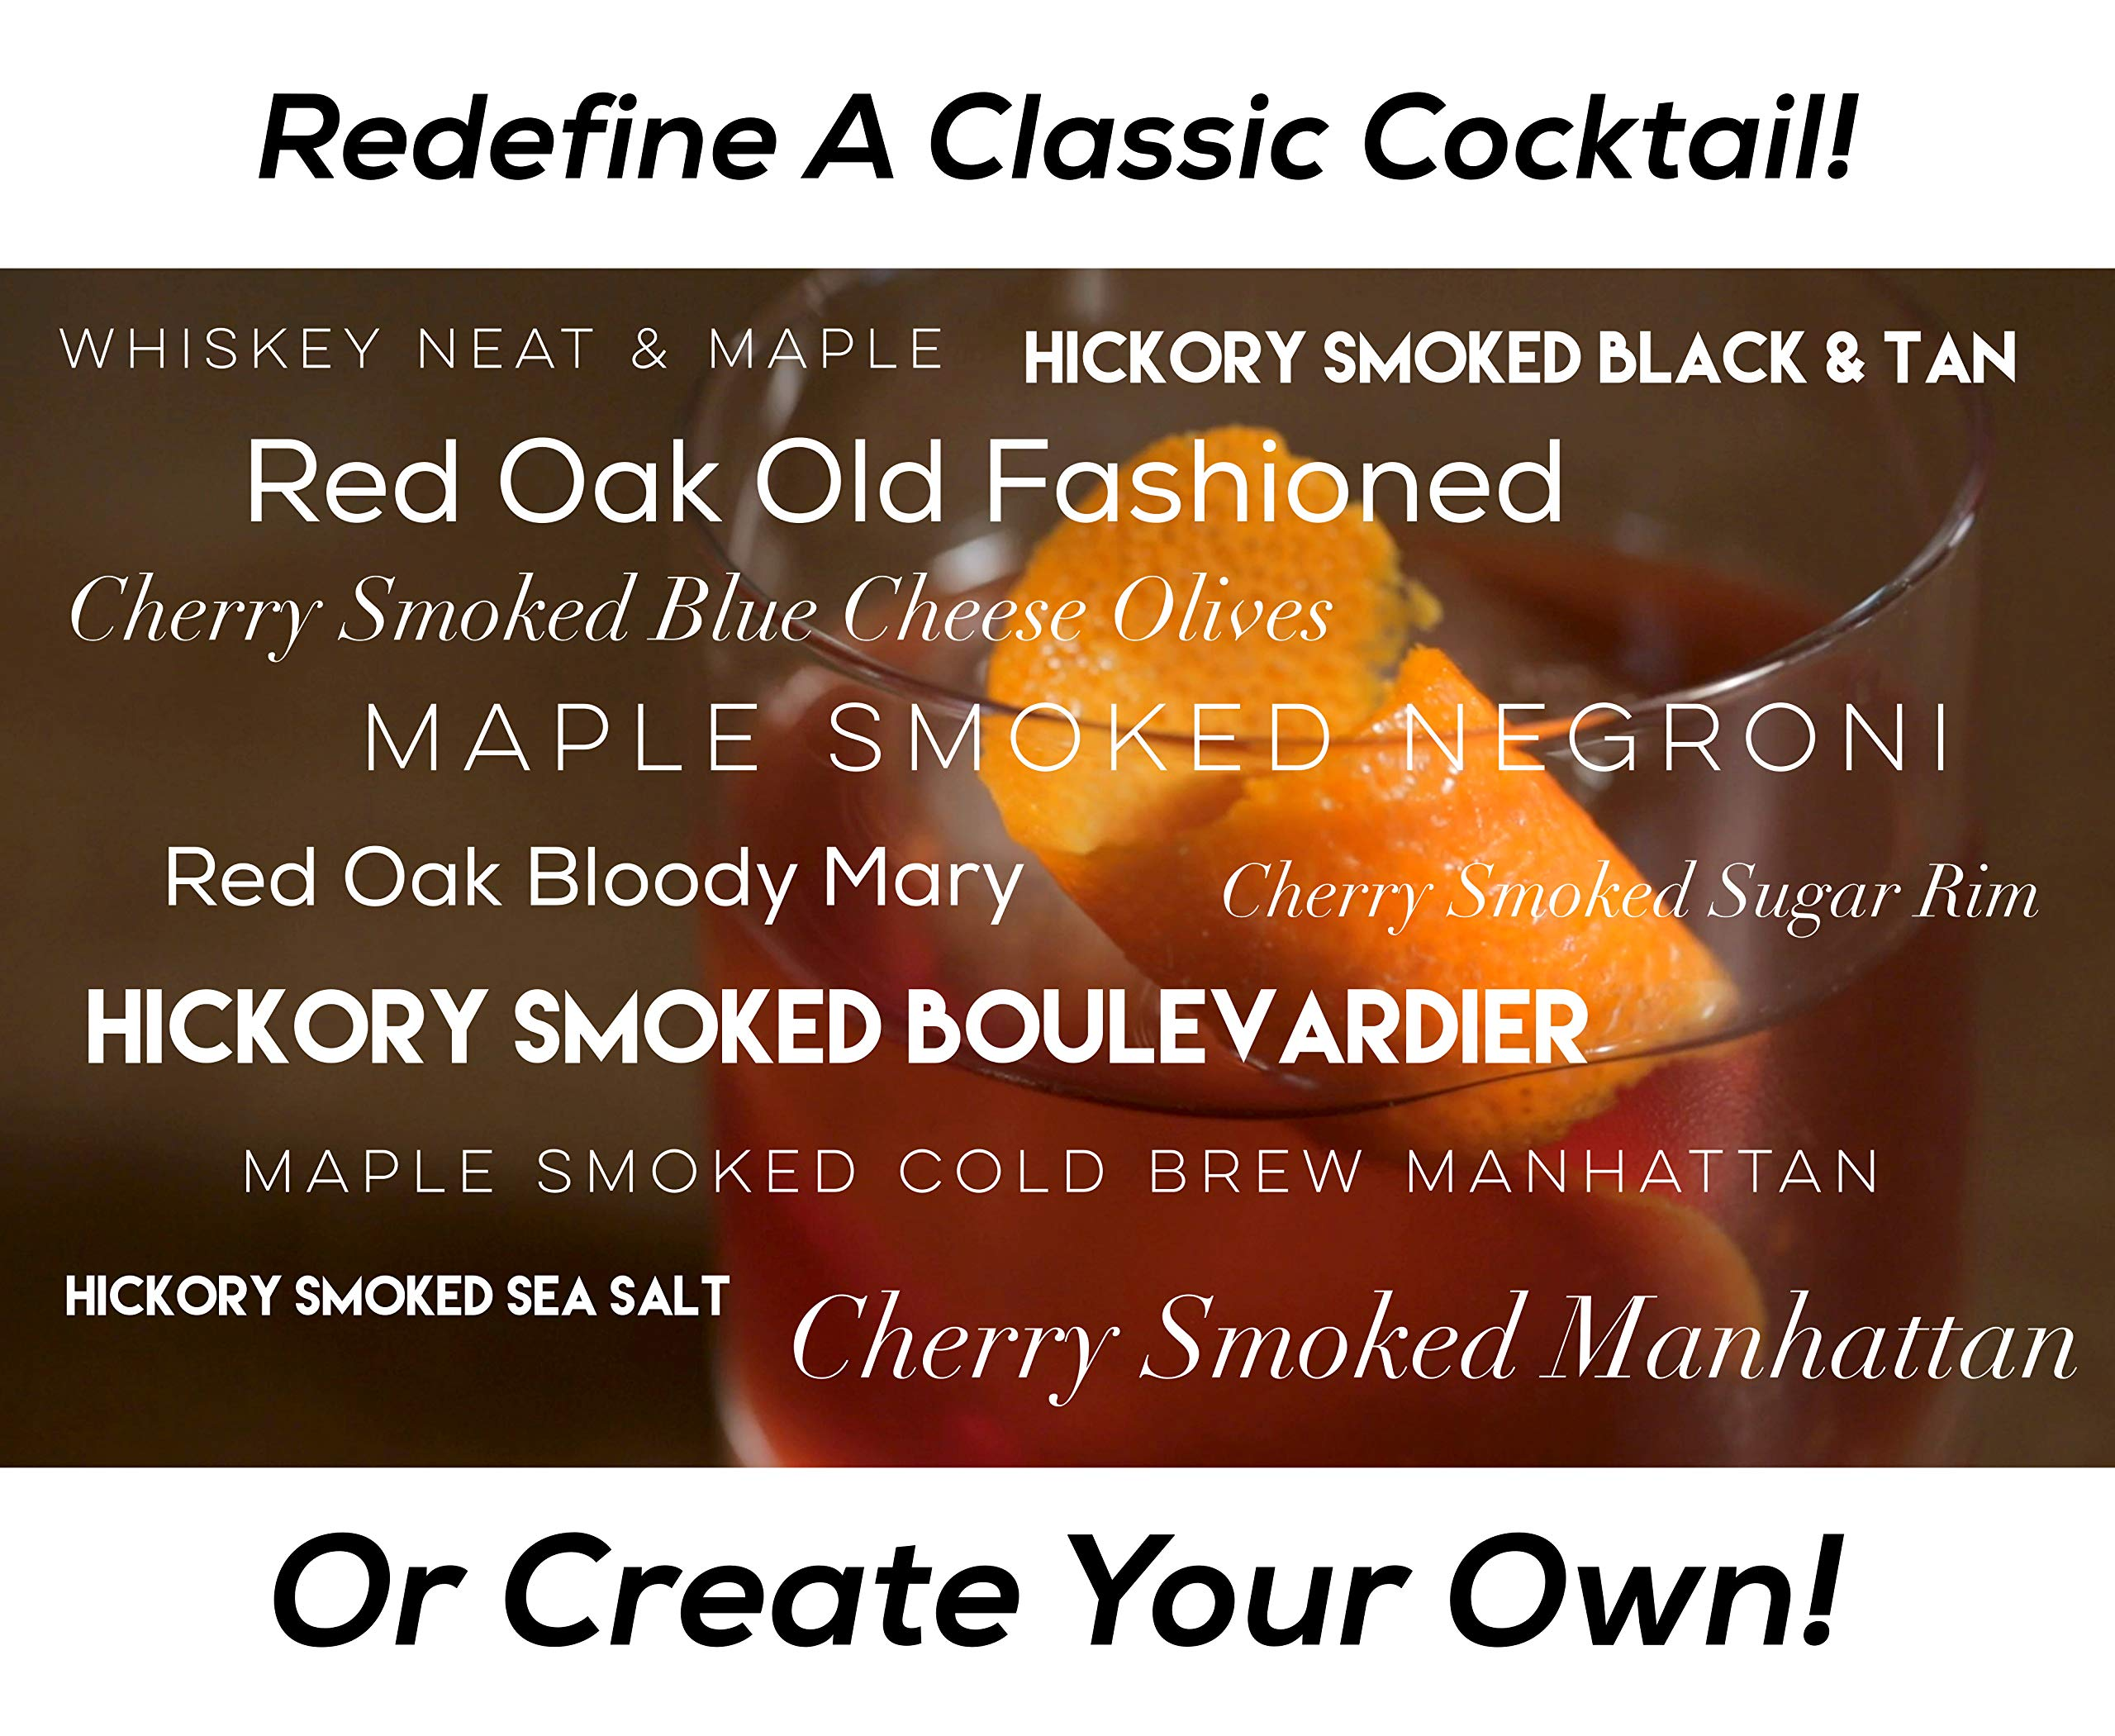 Cube of Smoke - Smoked Cocktail Kit, Four Hardwood Cubes, Classic Cocktail Recipe Book